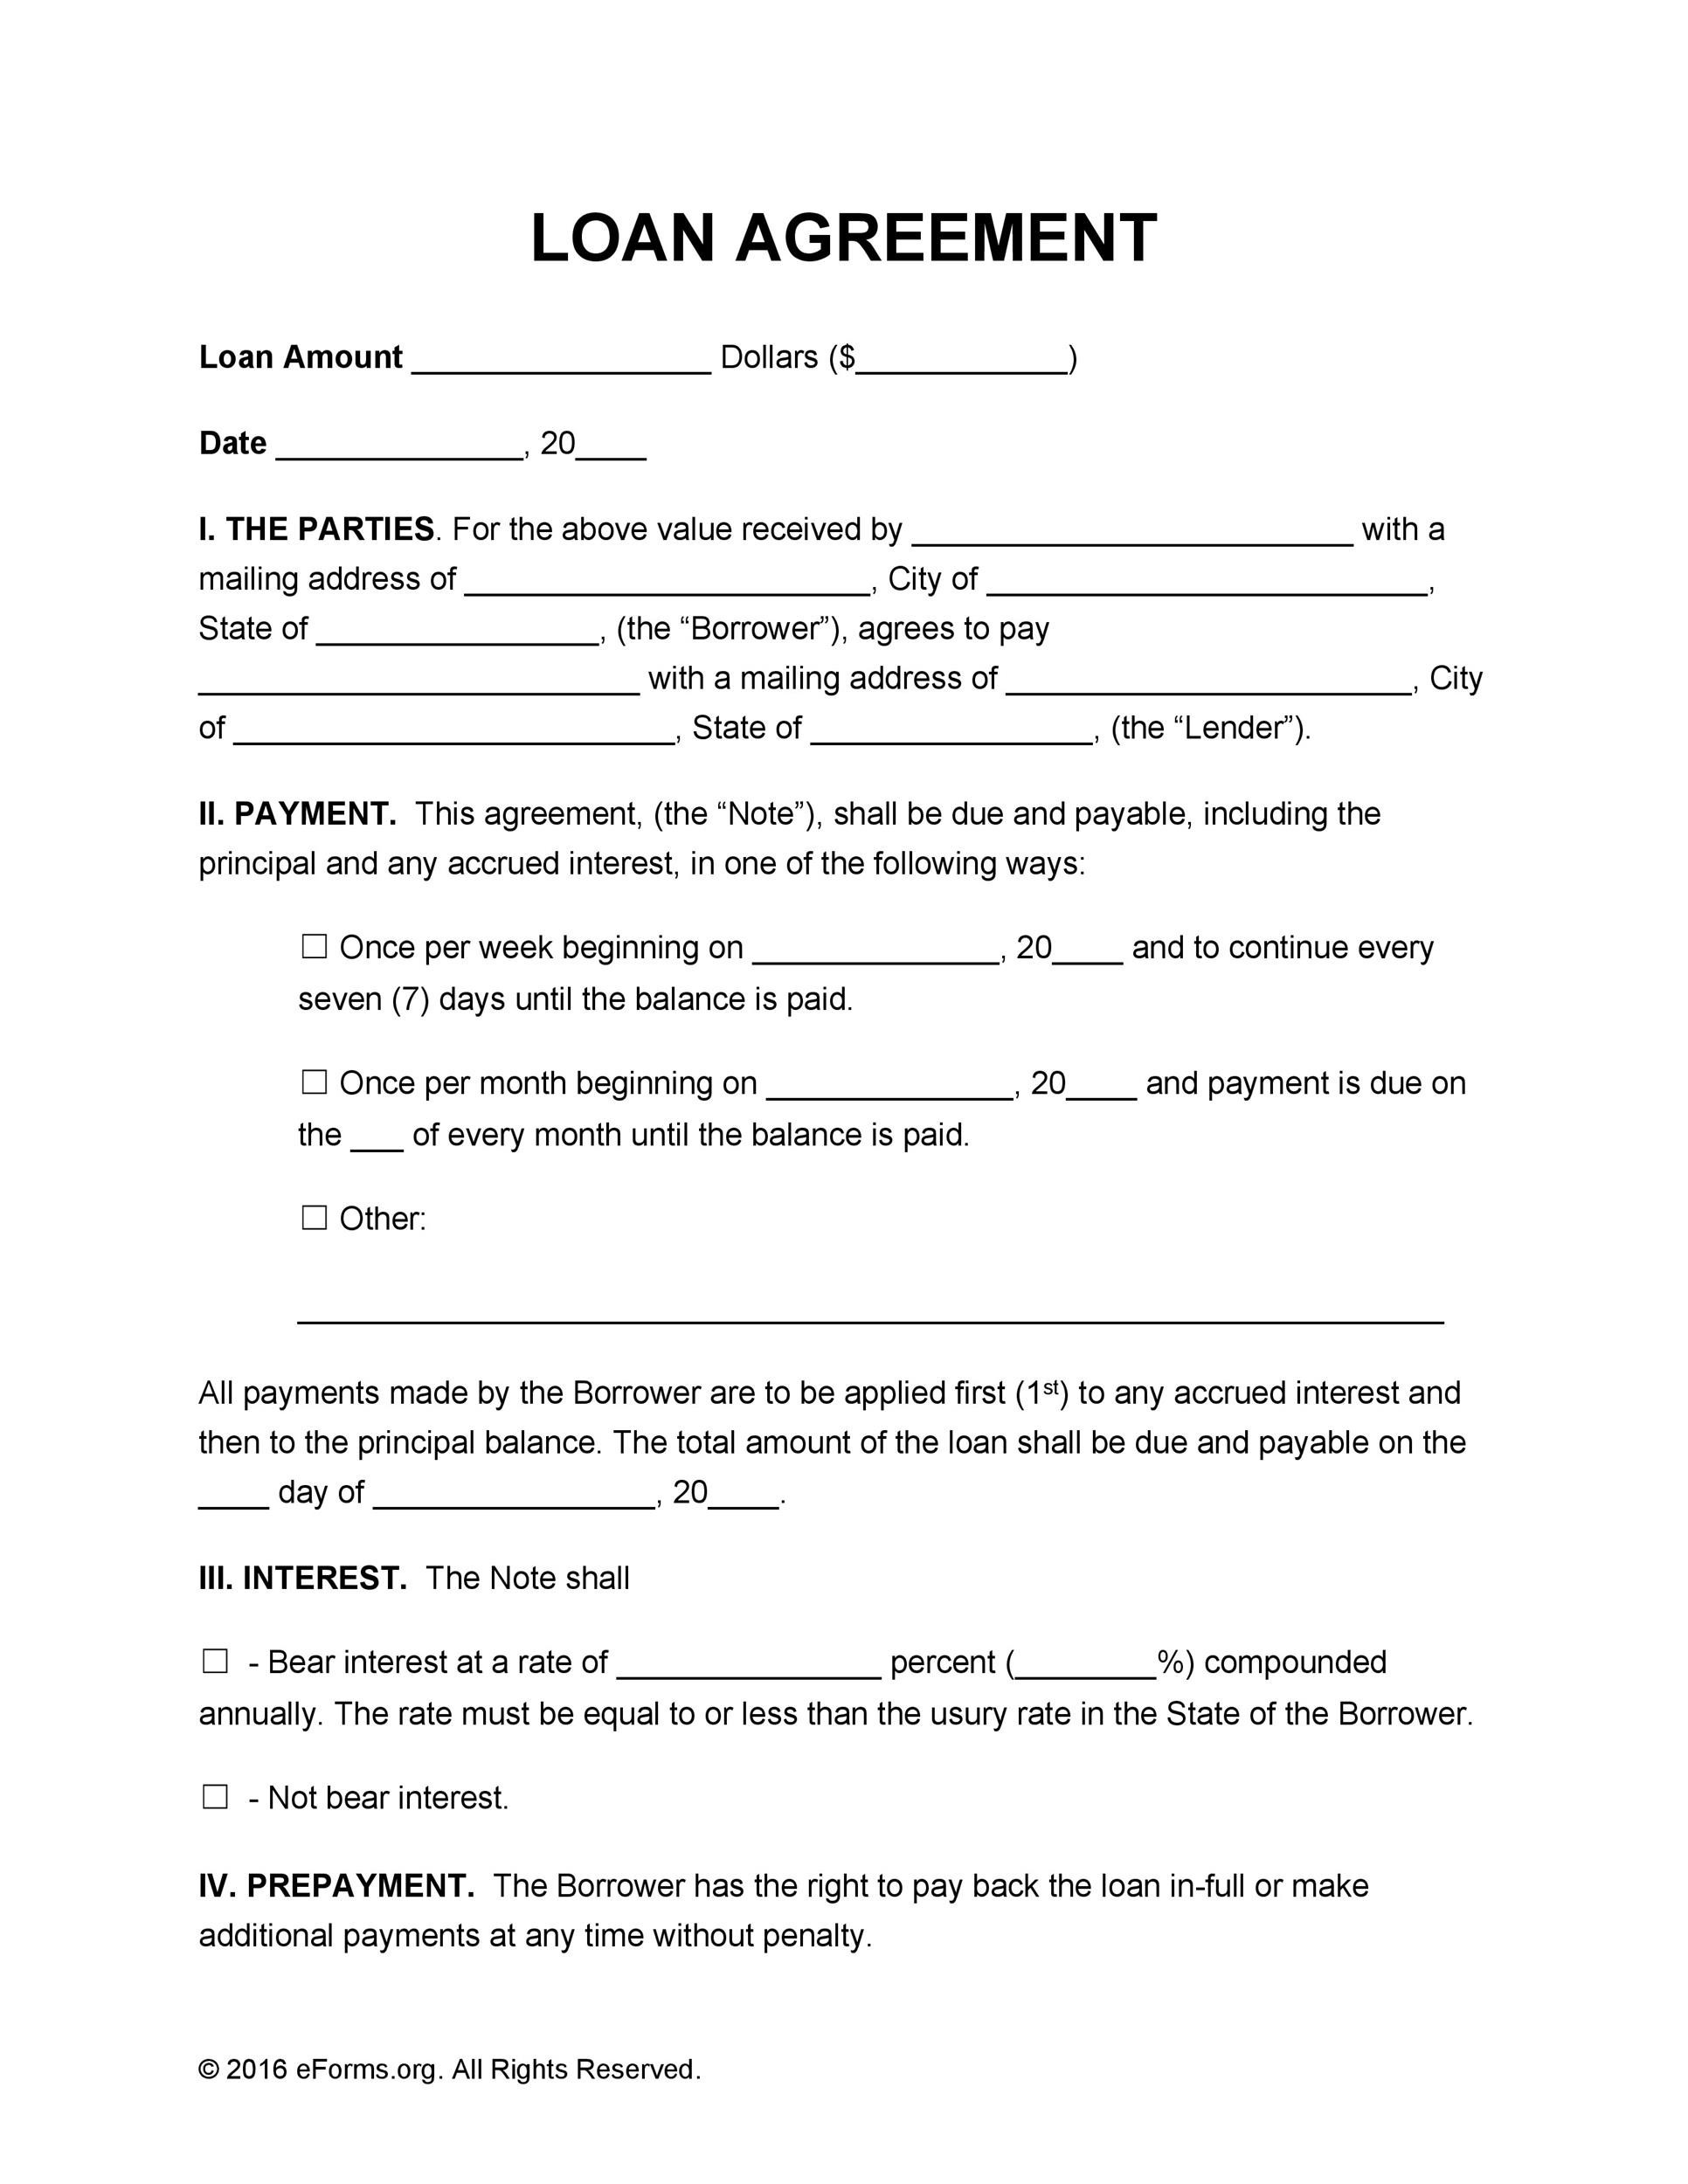 Free loan agreement template 06